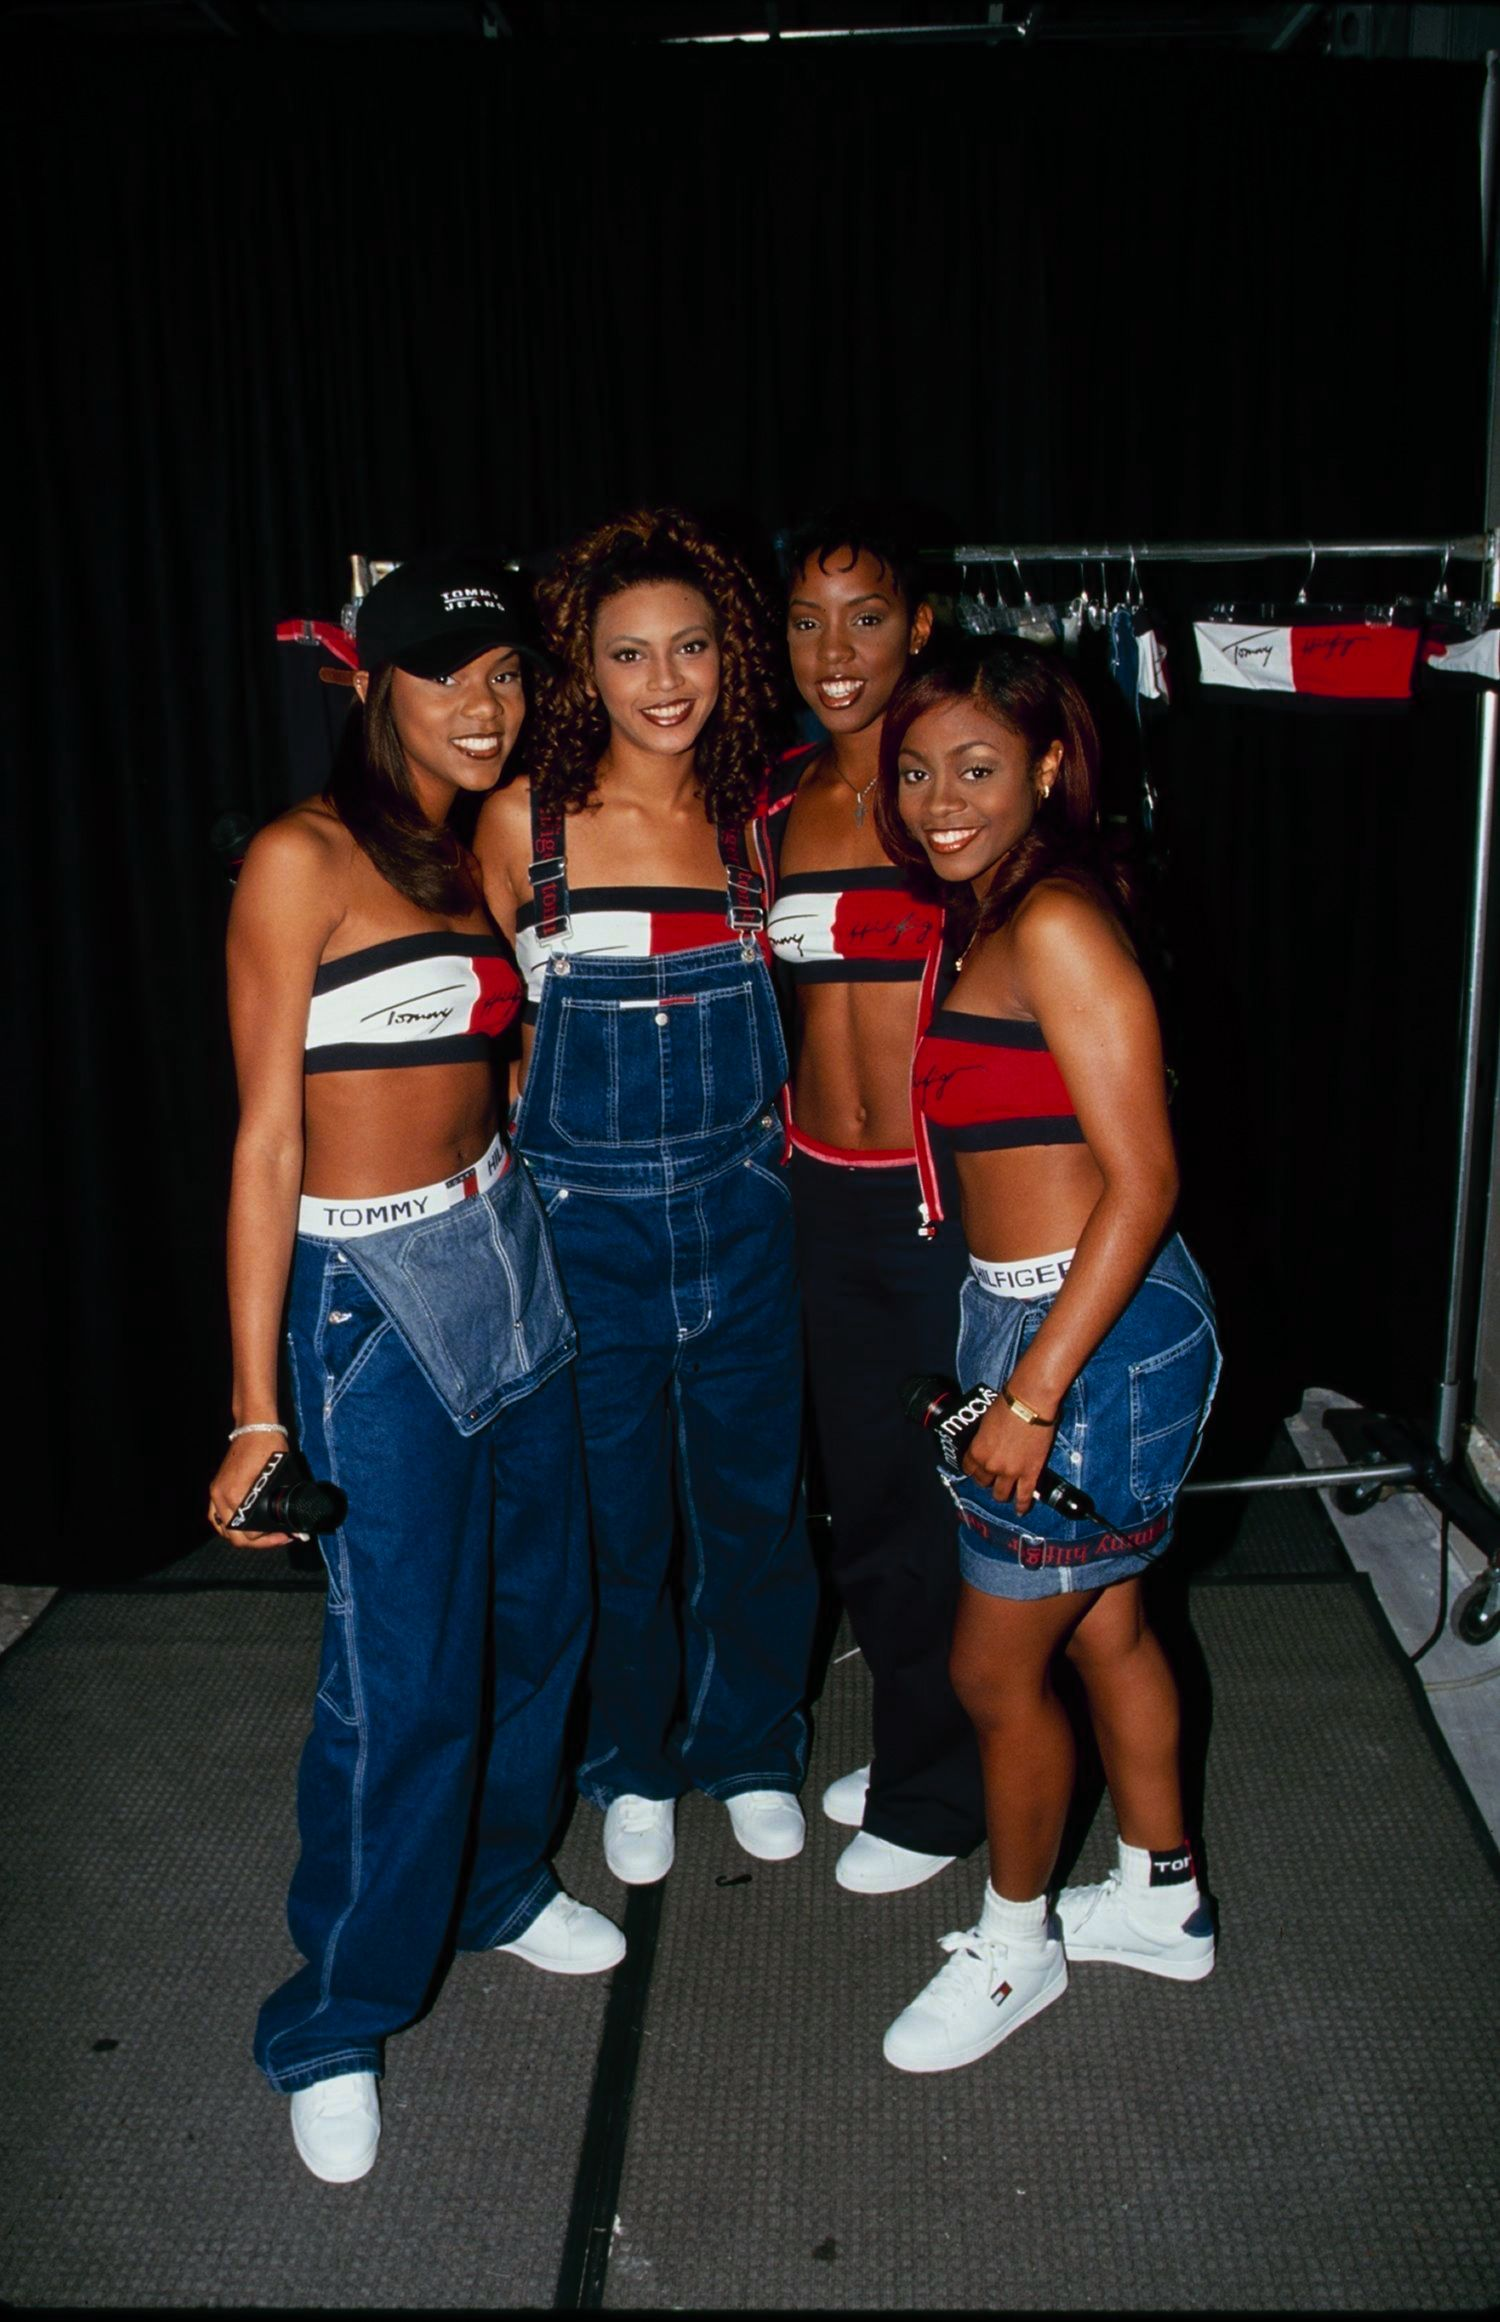 Luckett, Knowles, Rowland and Roberson at a Macy's event wearing matching Tommy Hilfiger ensembles.